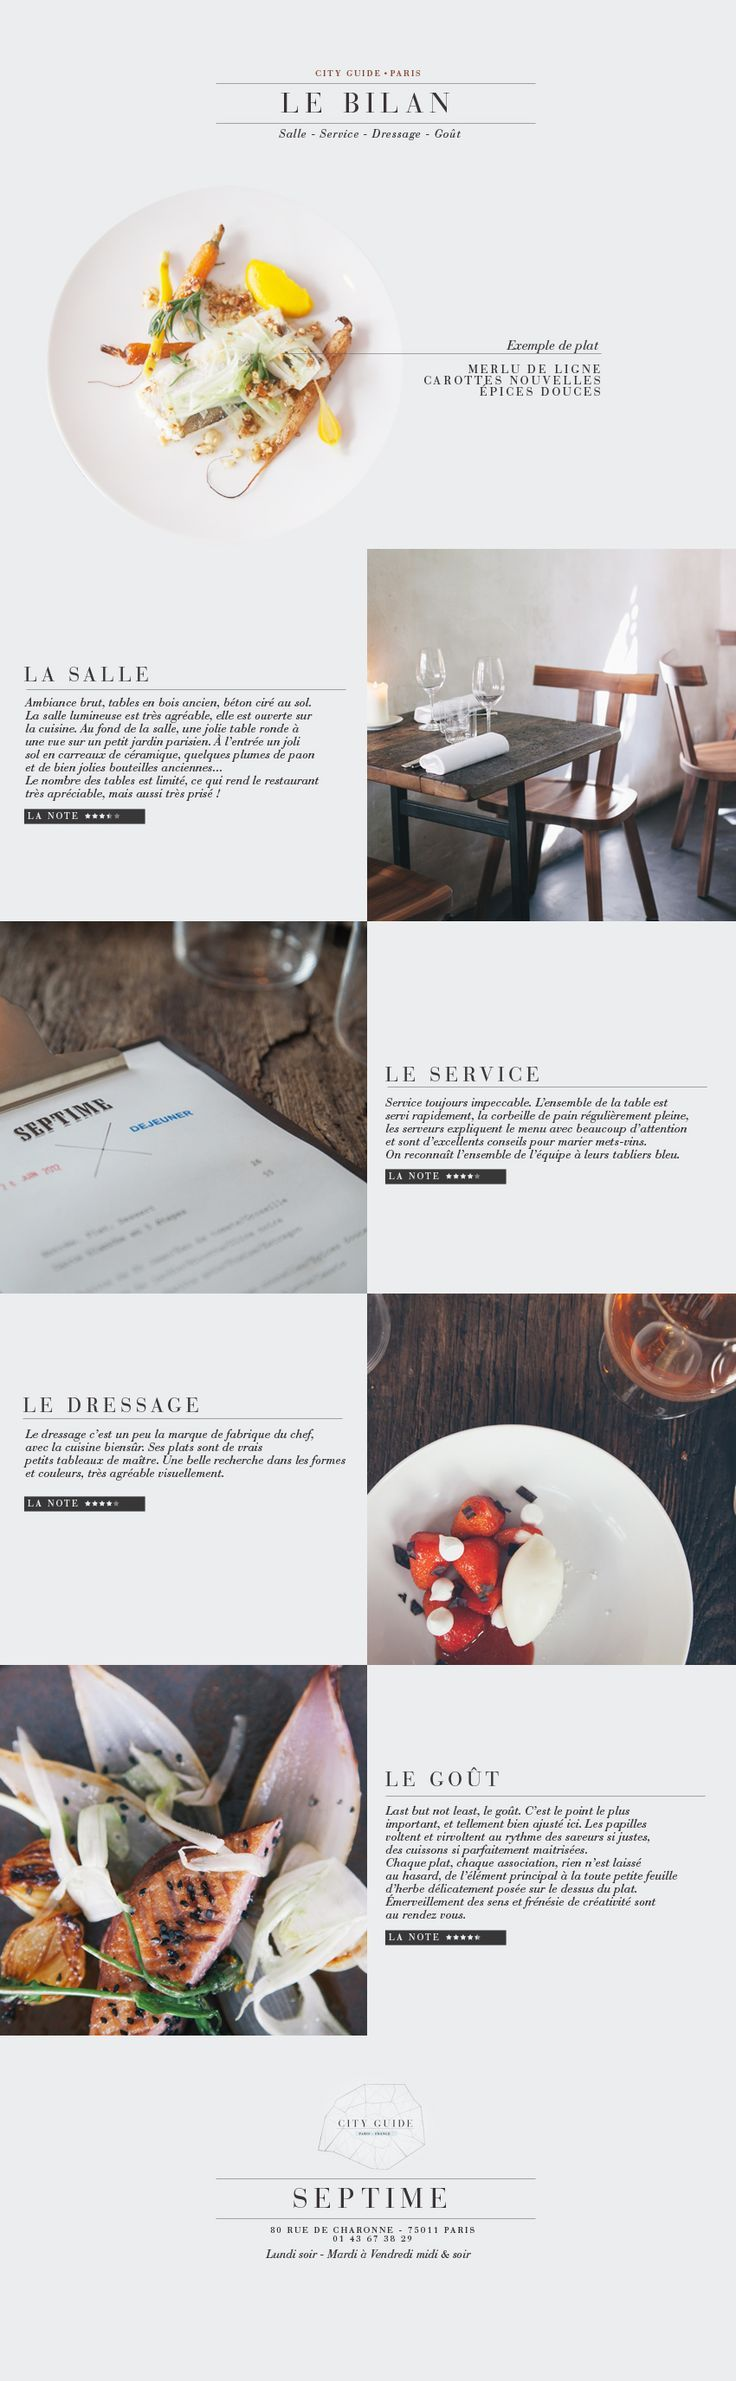 Restaurant Paris //  simple resturant website design